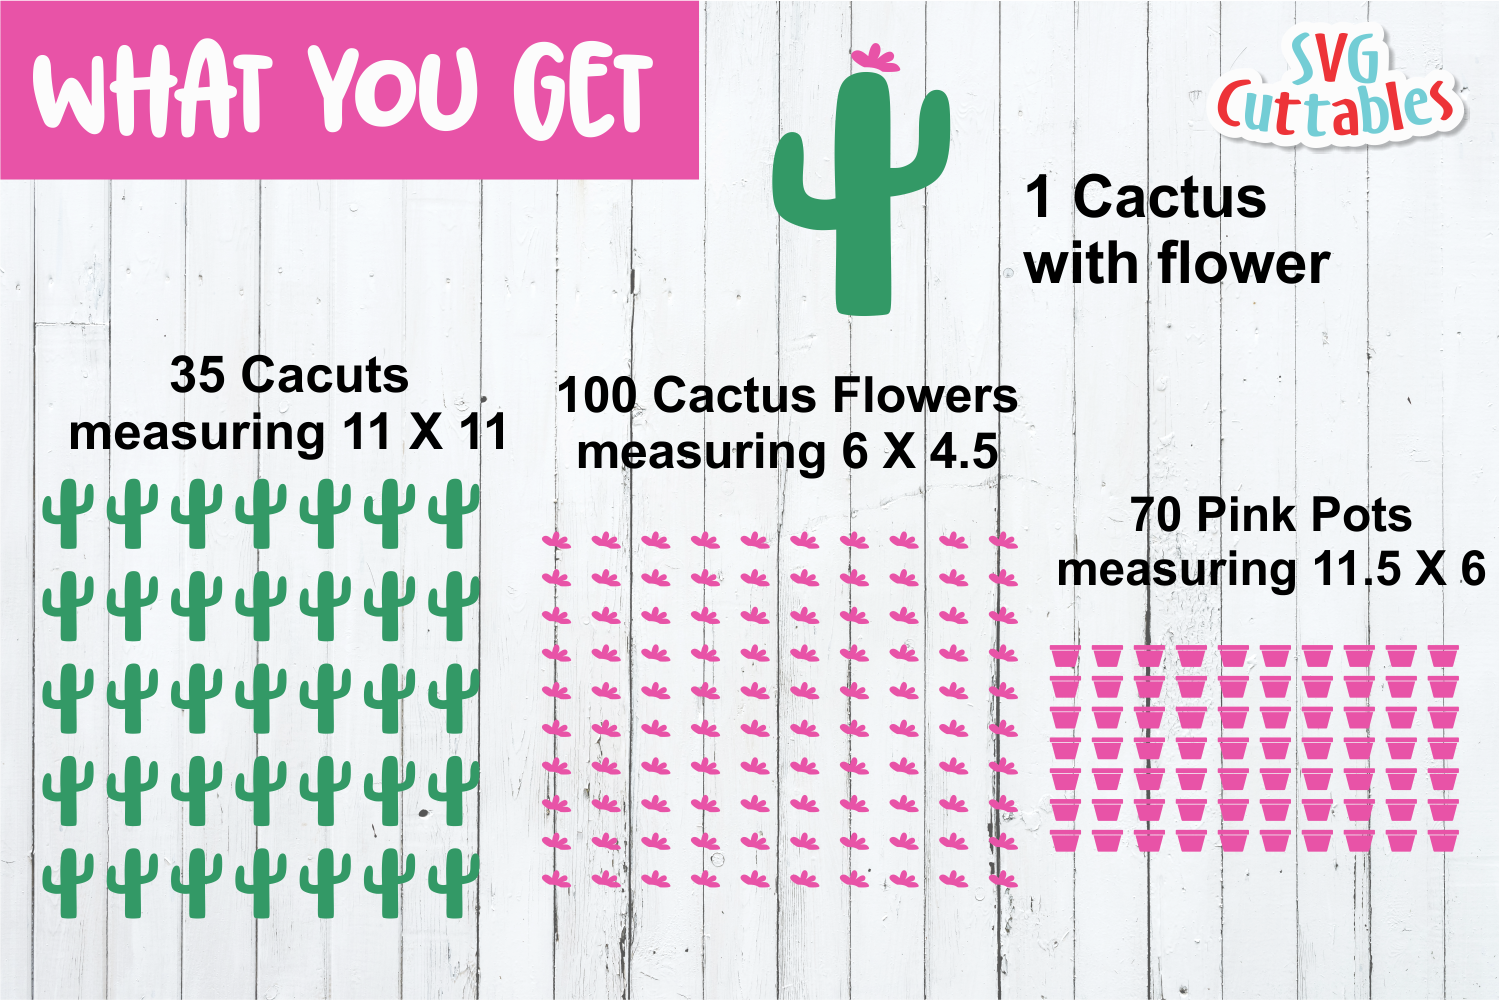 Cactus Cut File By Svg Cuttables Thehungryjpeg Com